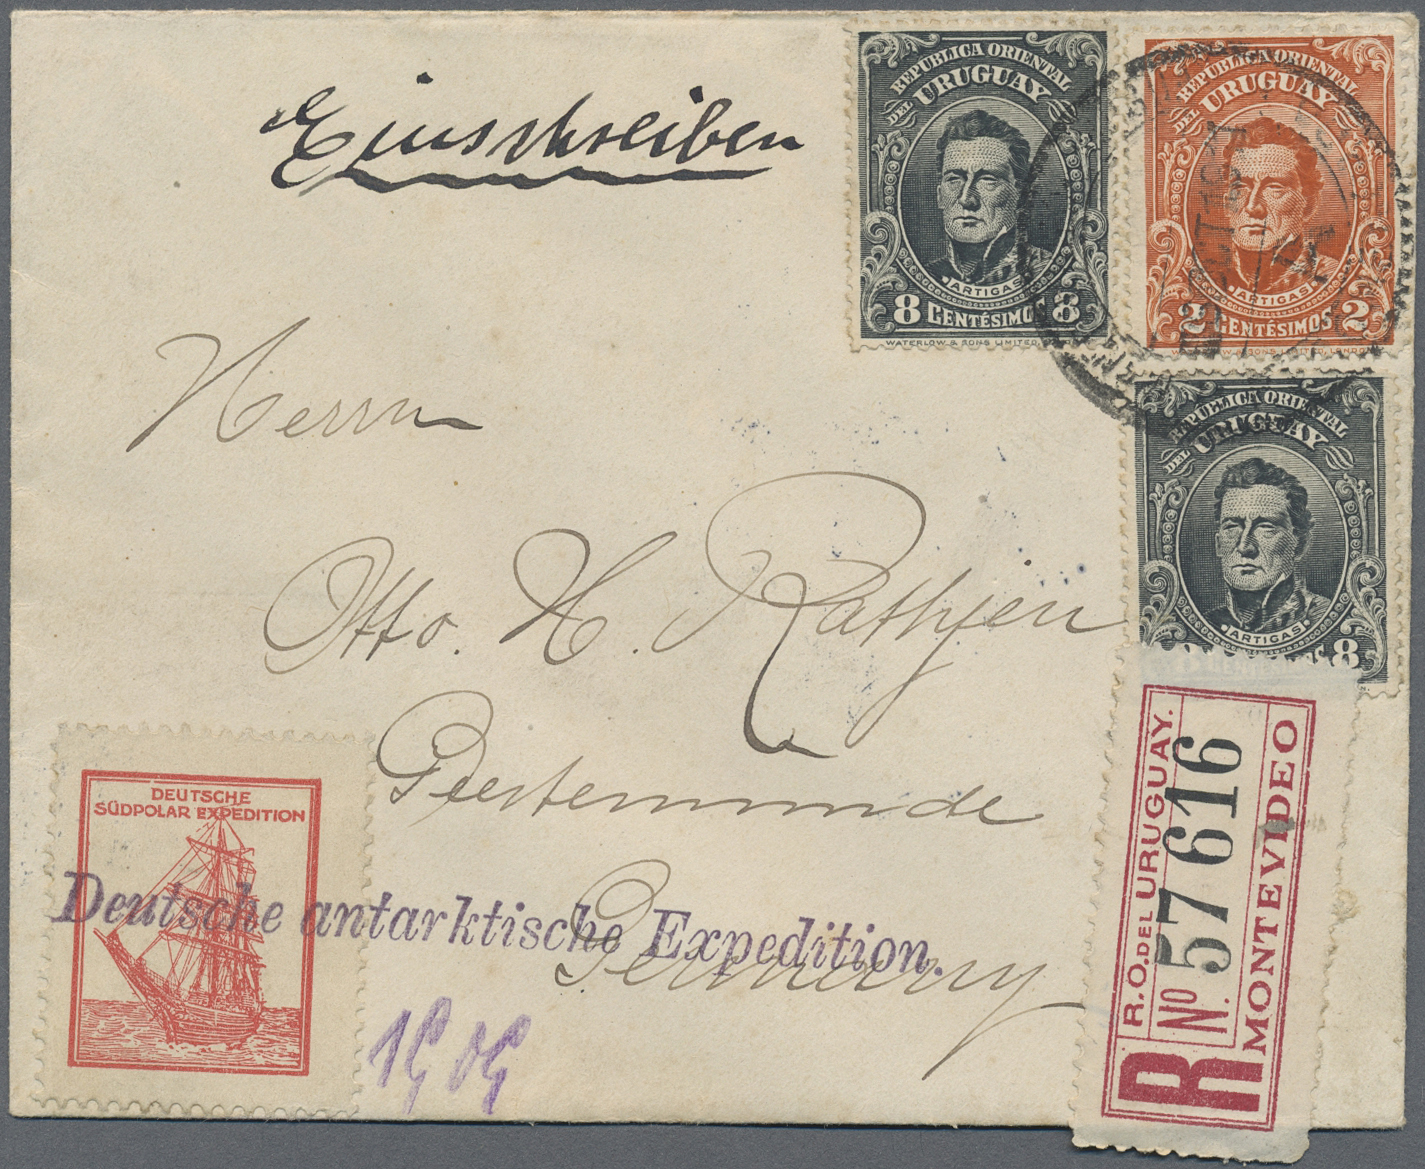 Lot 34400 - nachlässe  -  Auktionshaus Christoph Gärtner GmbH & Co. KG Collections Germany,  Collections Supplement, Surprise boxes #39 Day 7